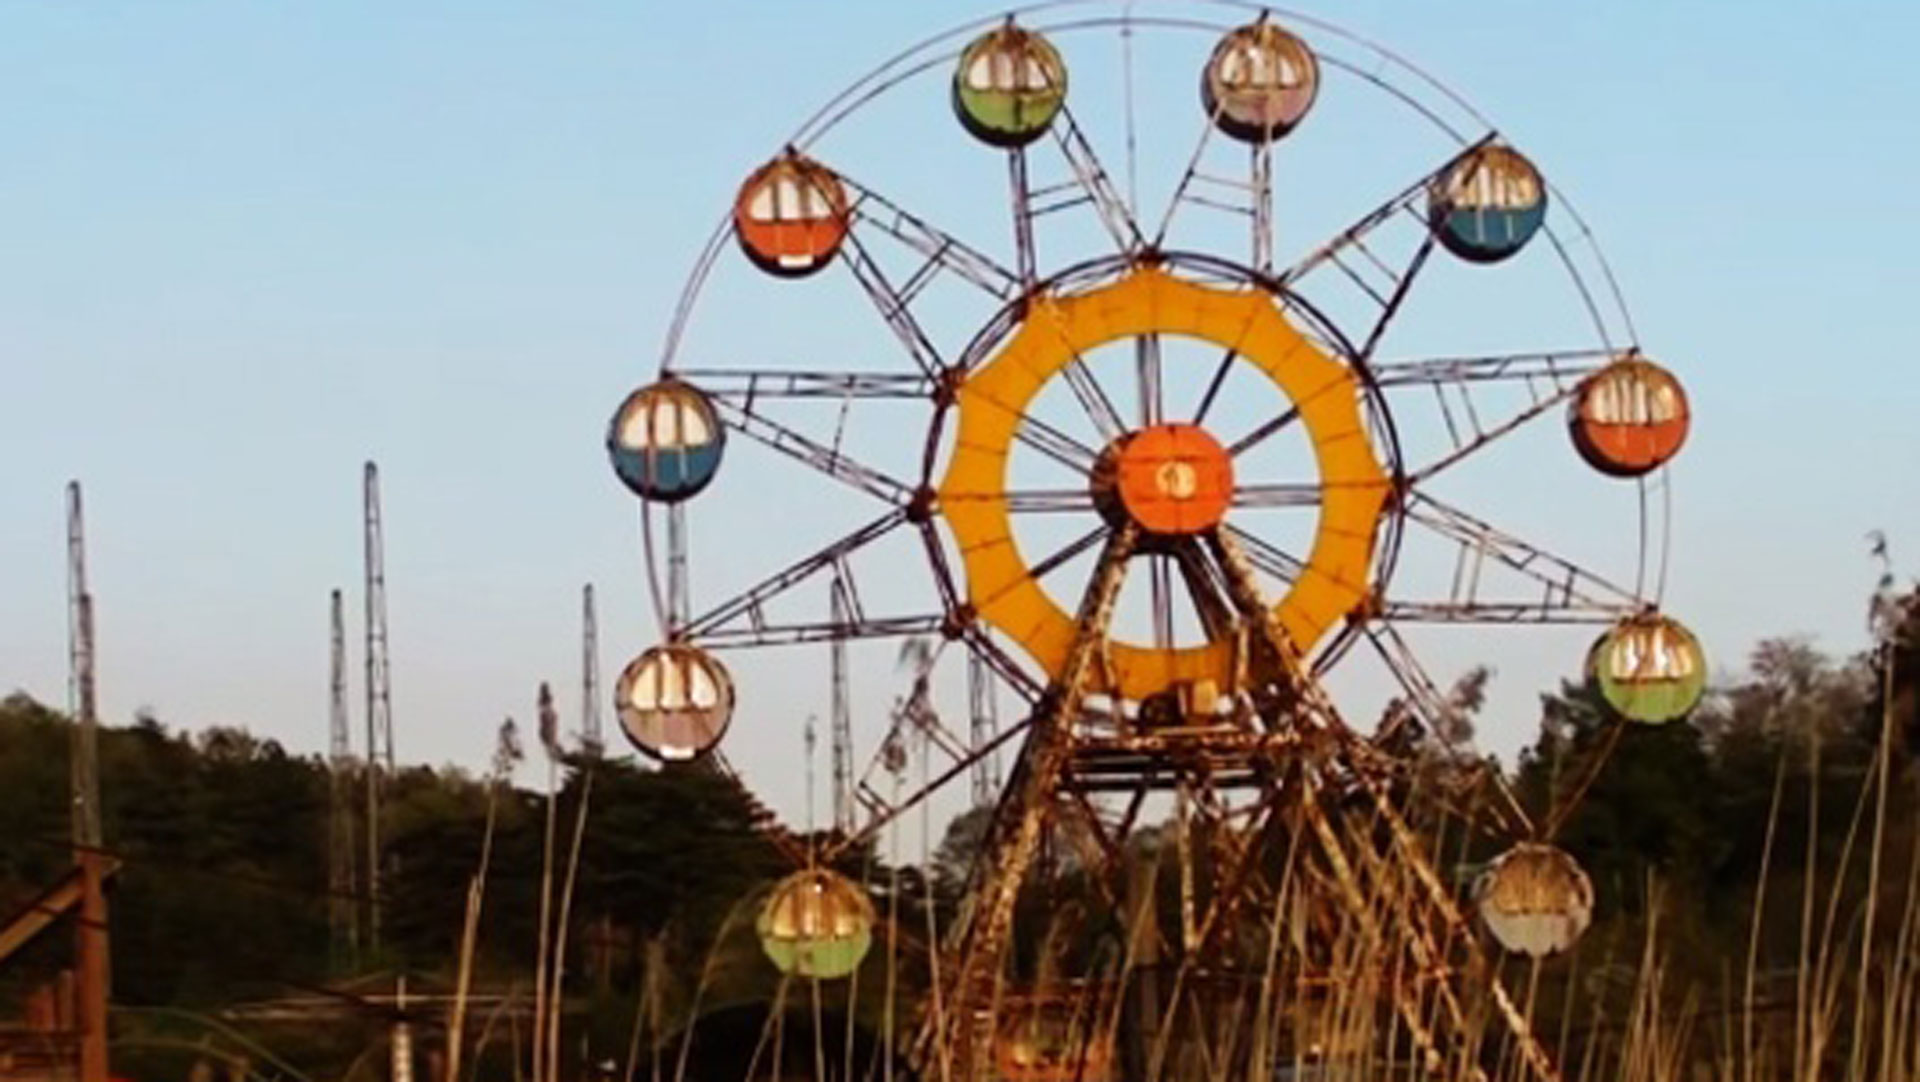 These Abandoned Theme Parks Are Super Creepy